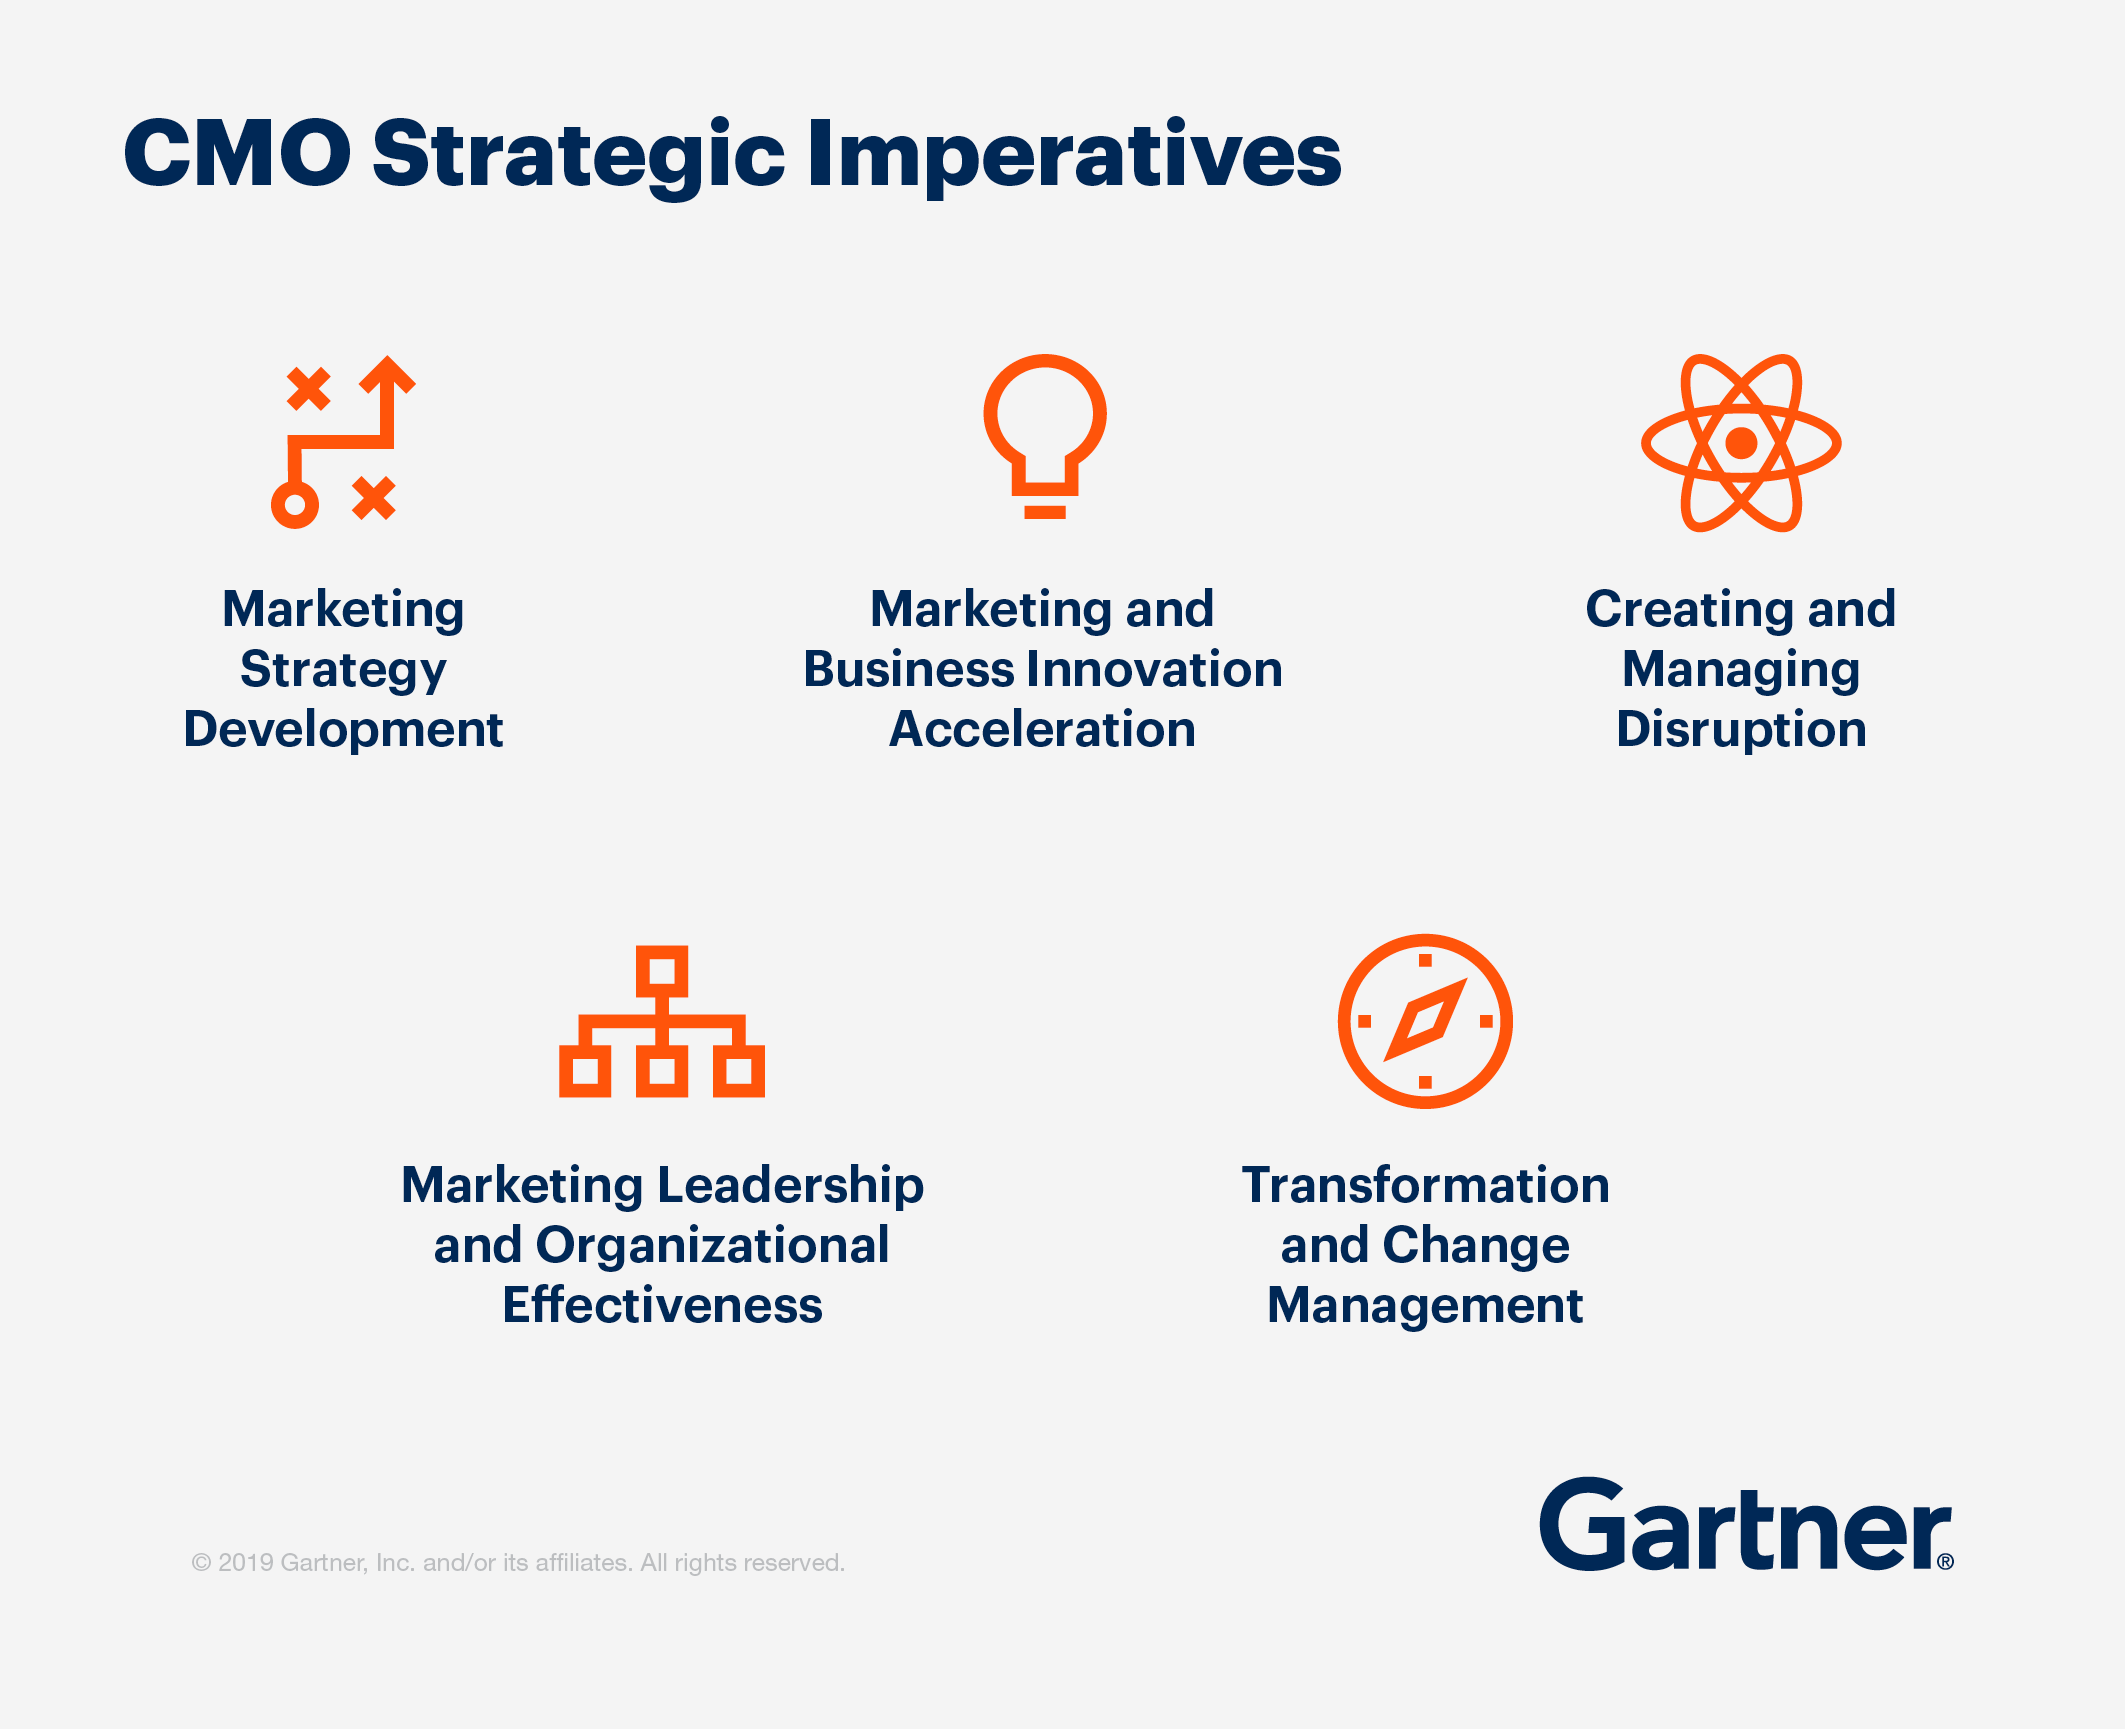 CMO strategic imperatives: marketing strategy development, marketing and business innovation acceleration, creating and managing disruption, marketing leadership and organizational effectiveness, and transformation and change management.